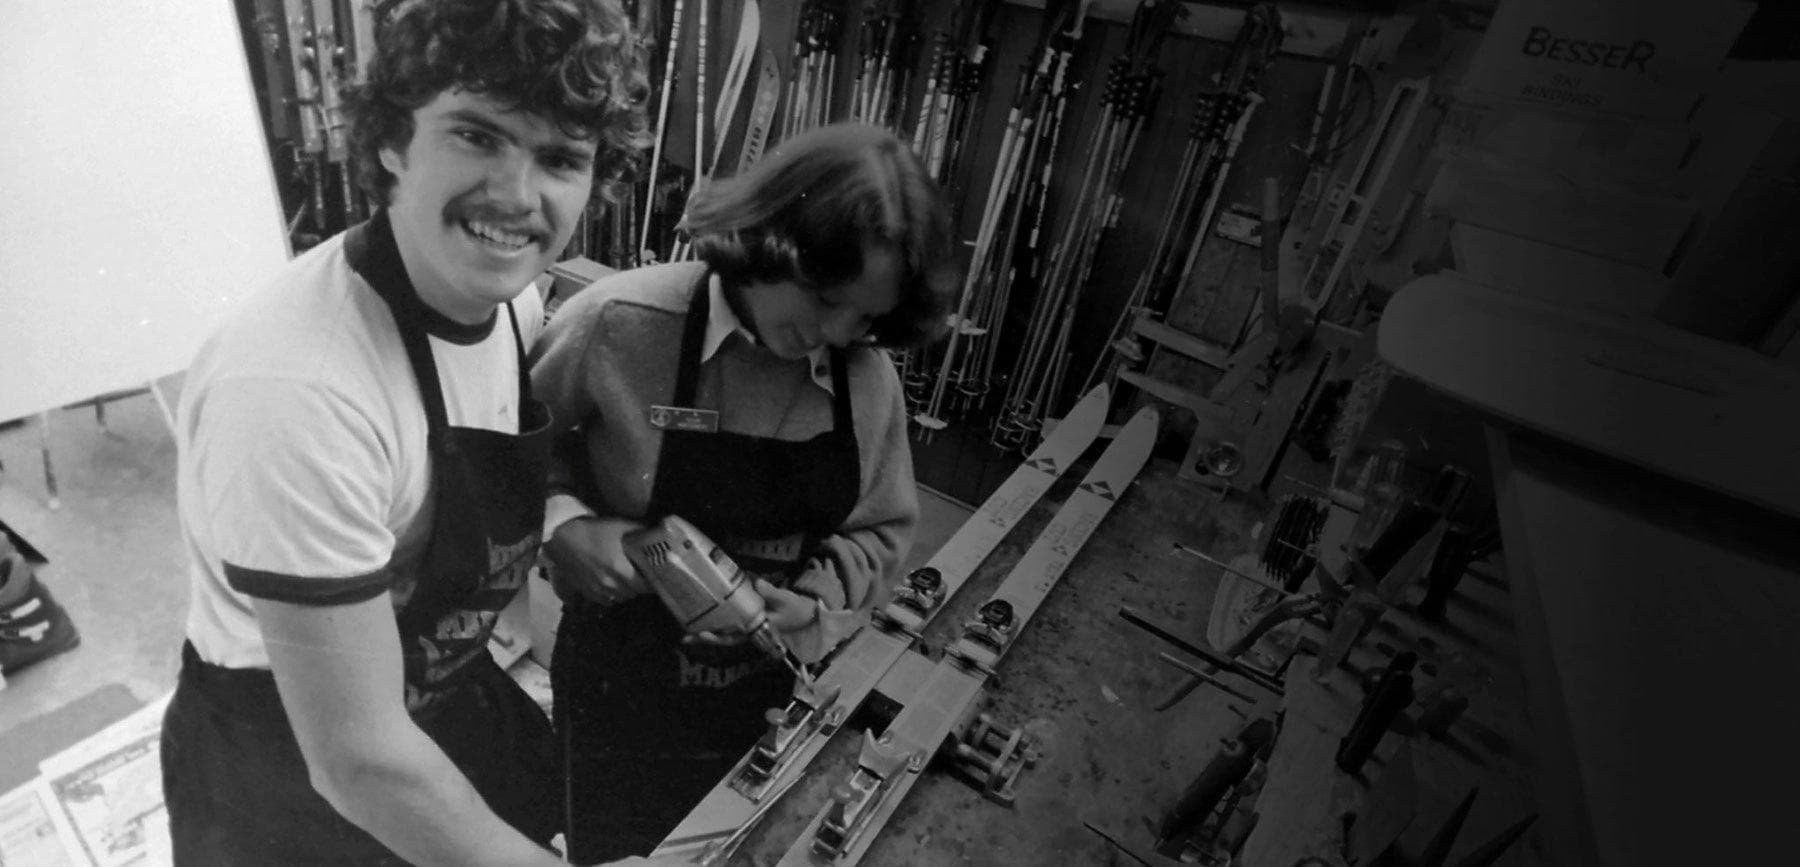 Vintage image of Skiis and Biikes founders tuning skis